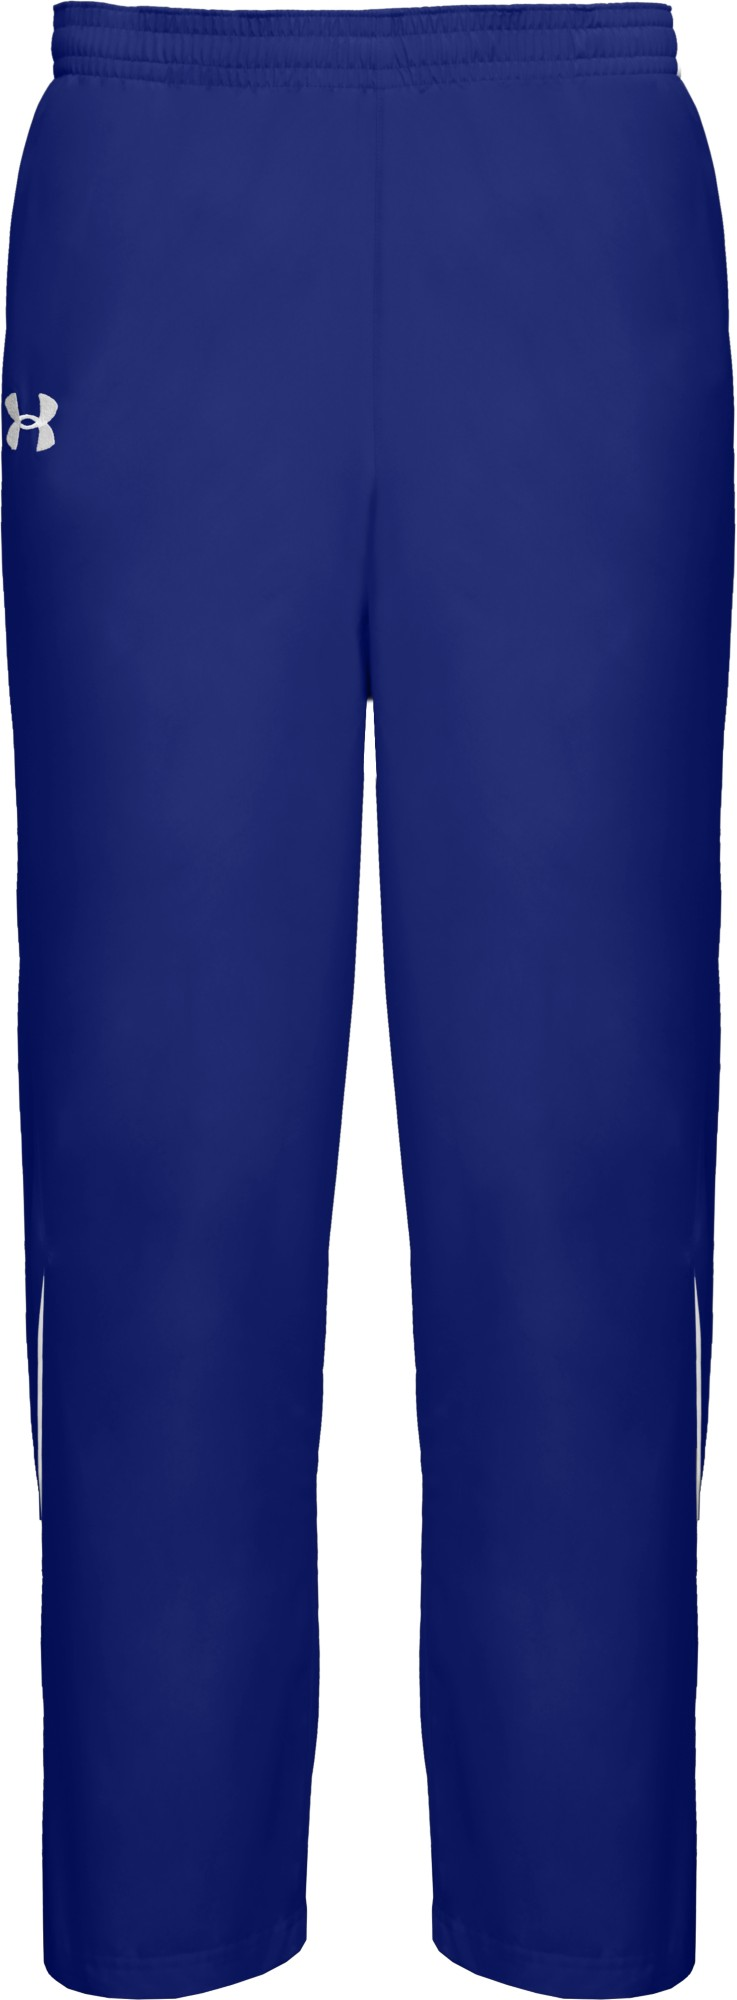 photo: Under Armour Gust II Pant wind pant